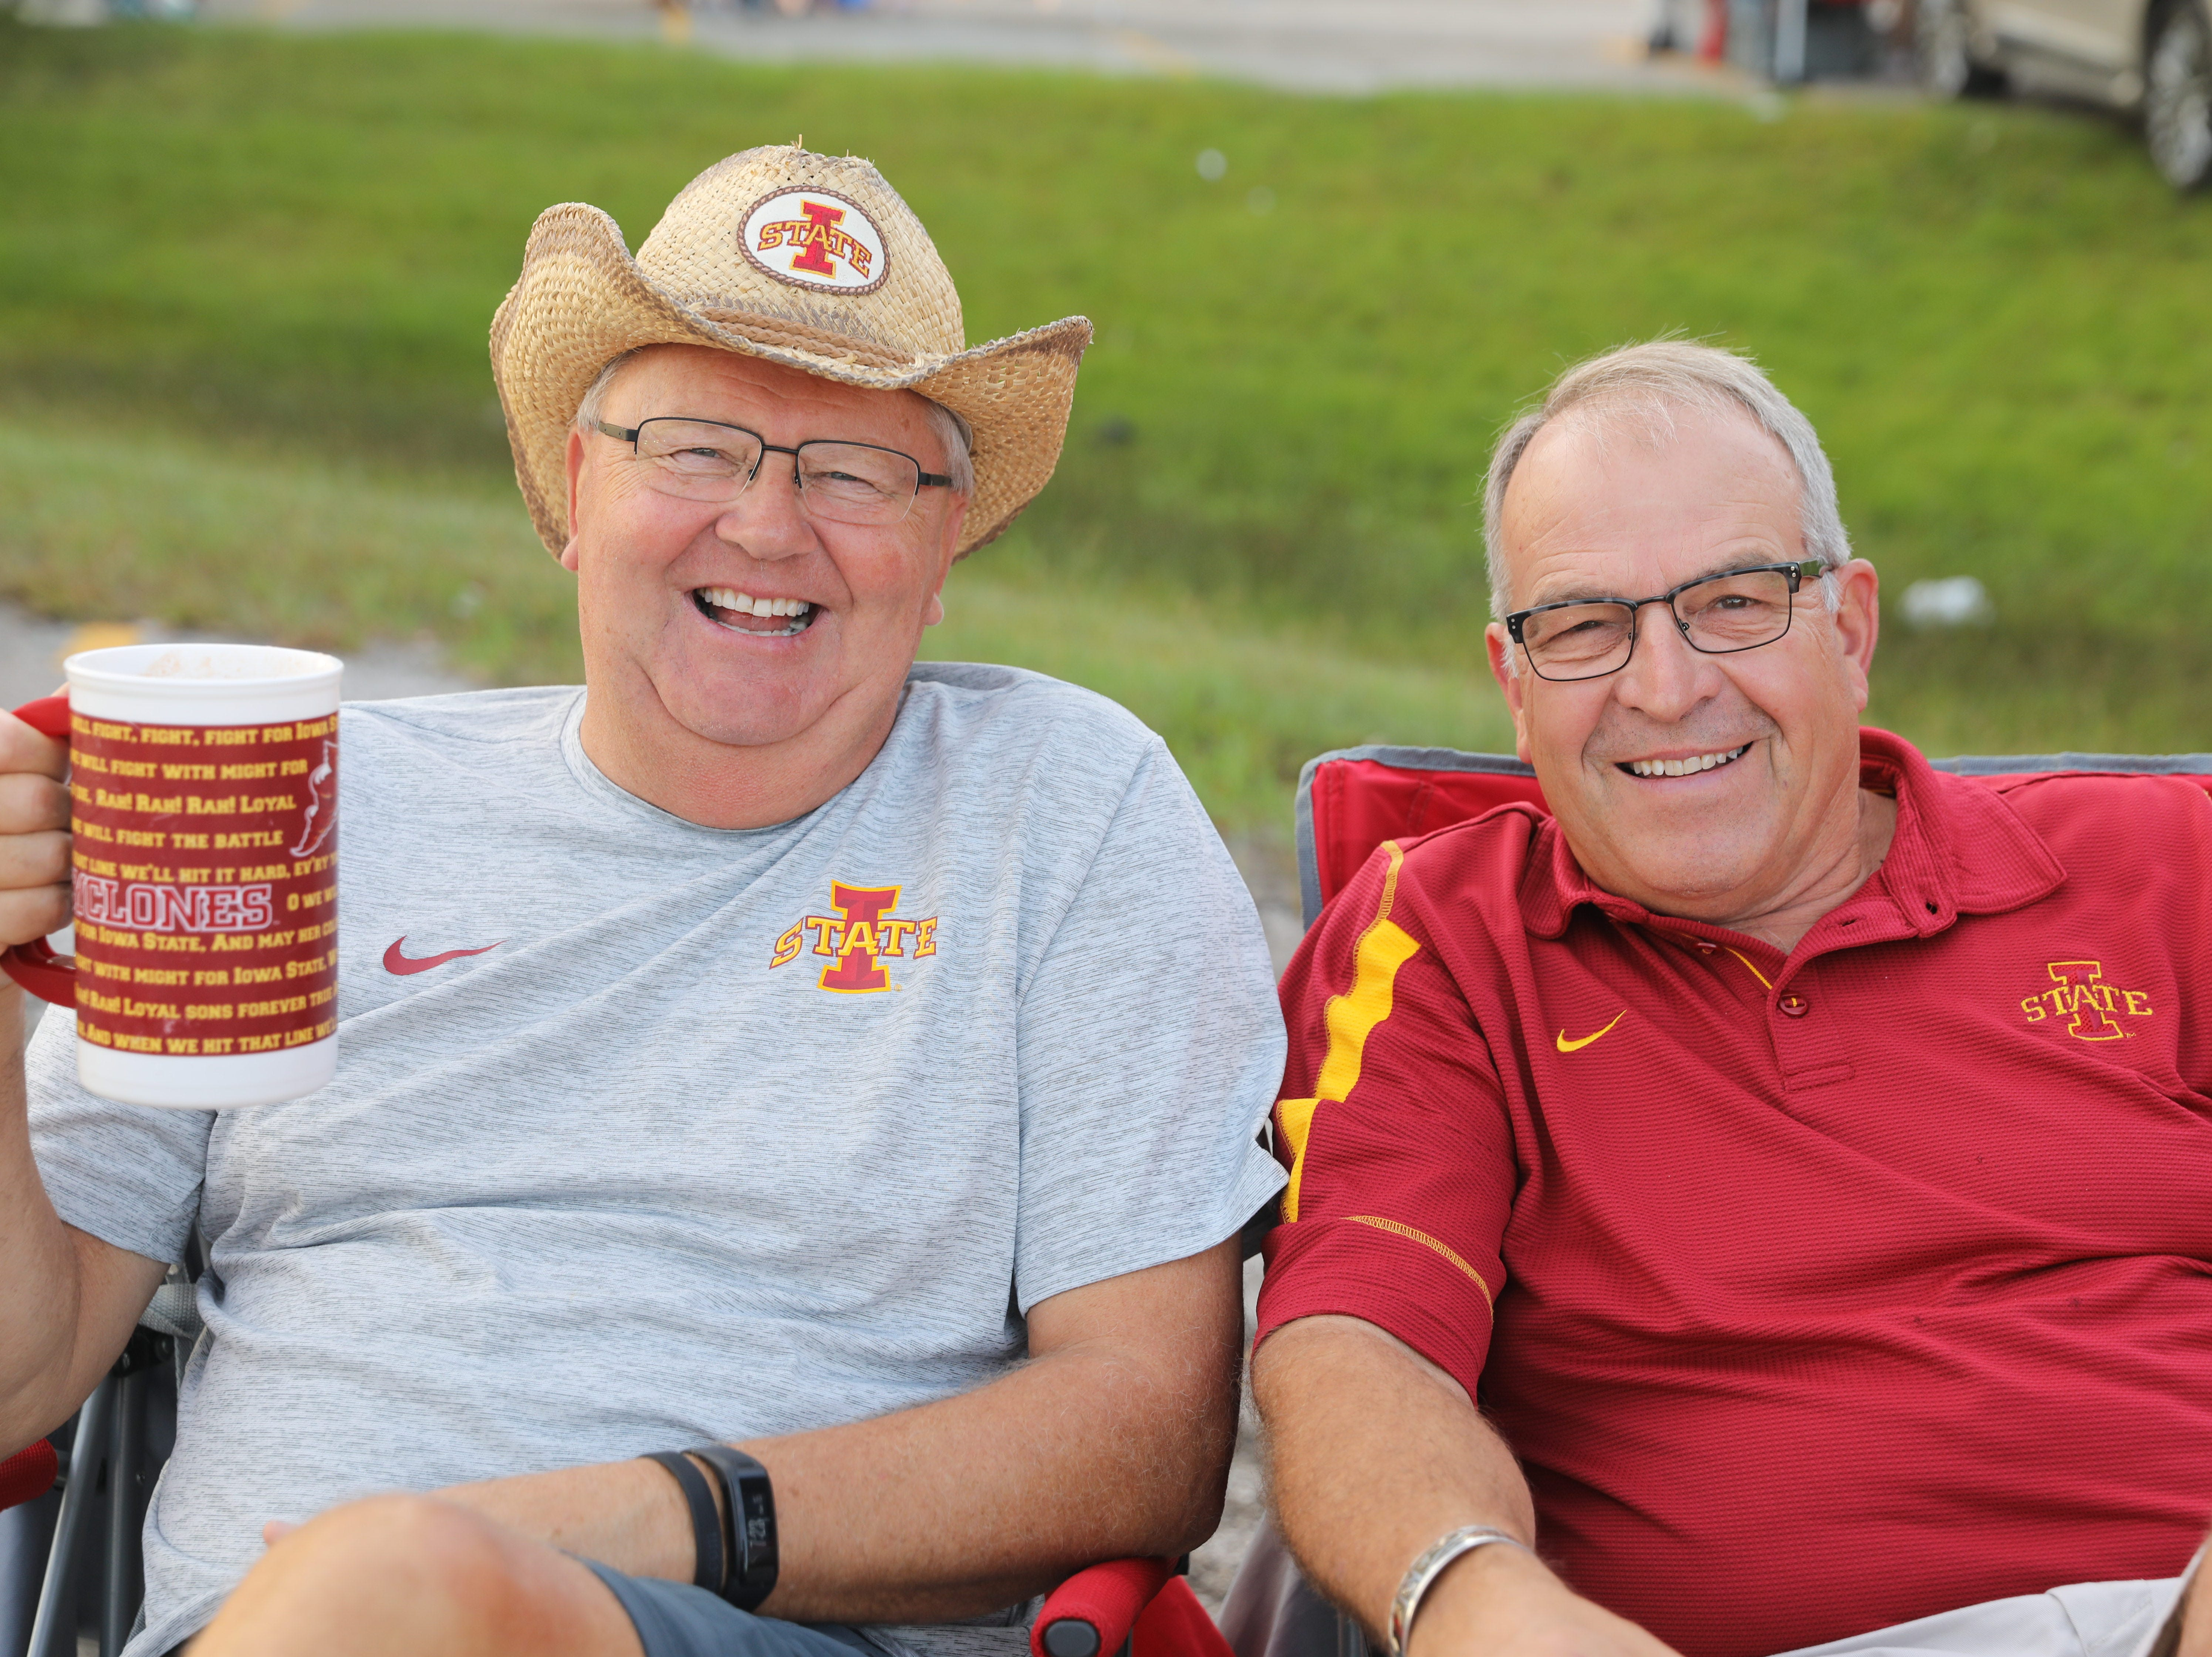 Jim Sogard of Ames (left) and Steve Perry of New Providence Saturday, Sept. 15, 2018, before the Iowa State football game against Oklahoma in Ames.